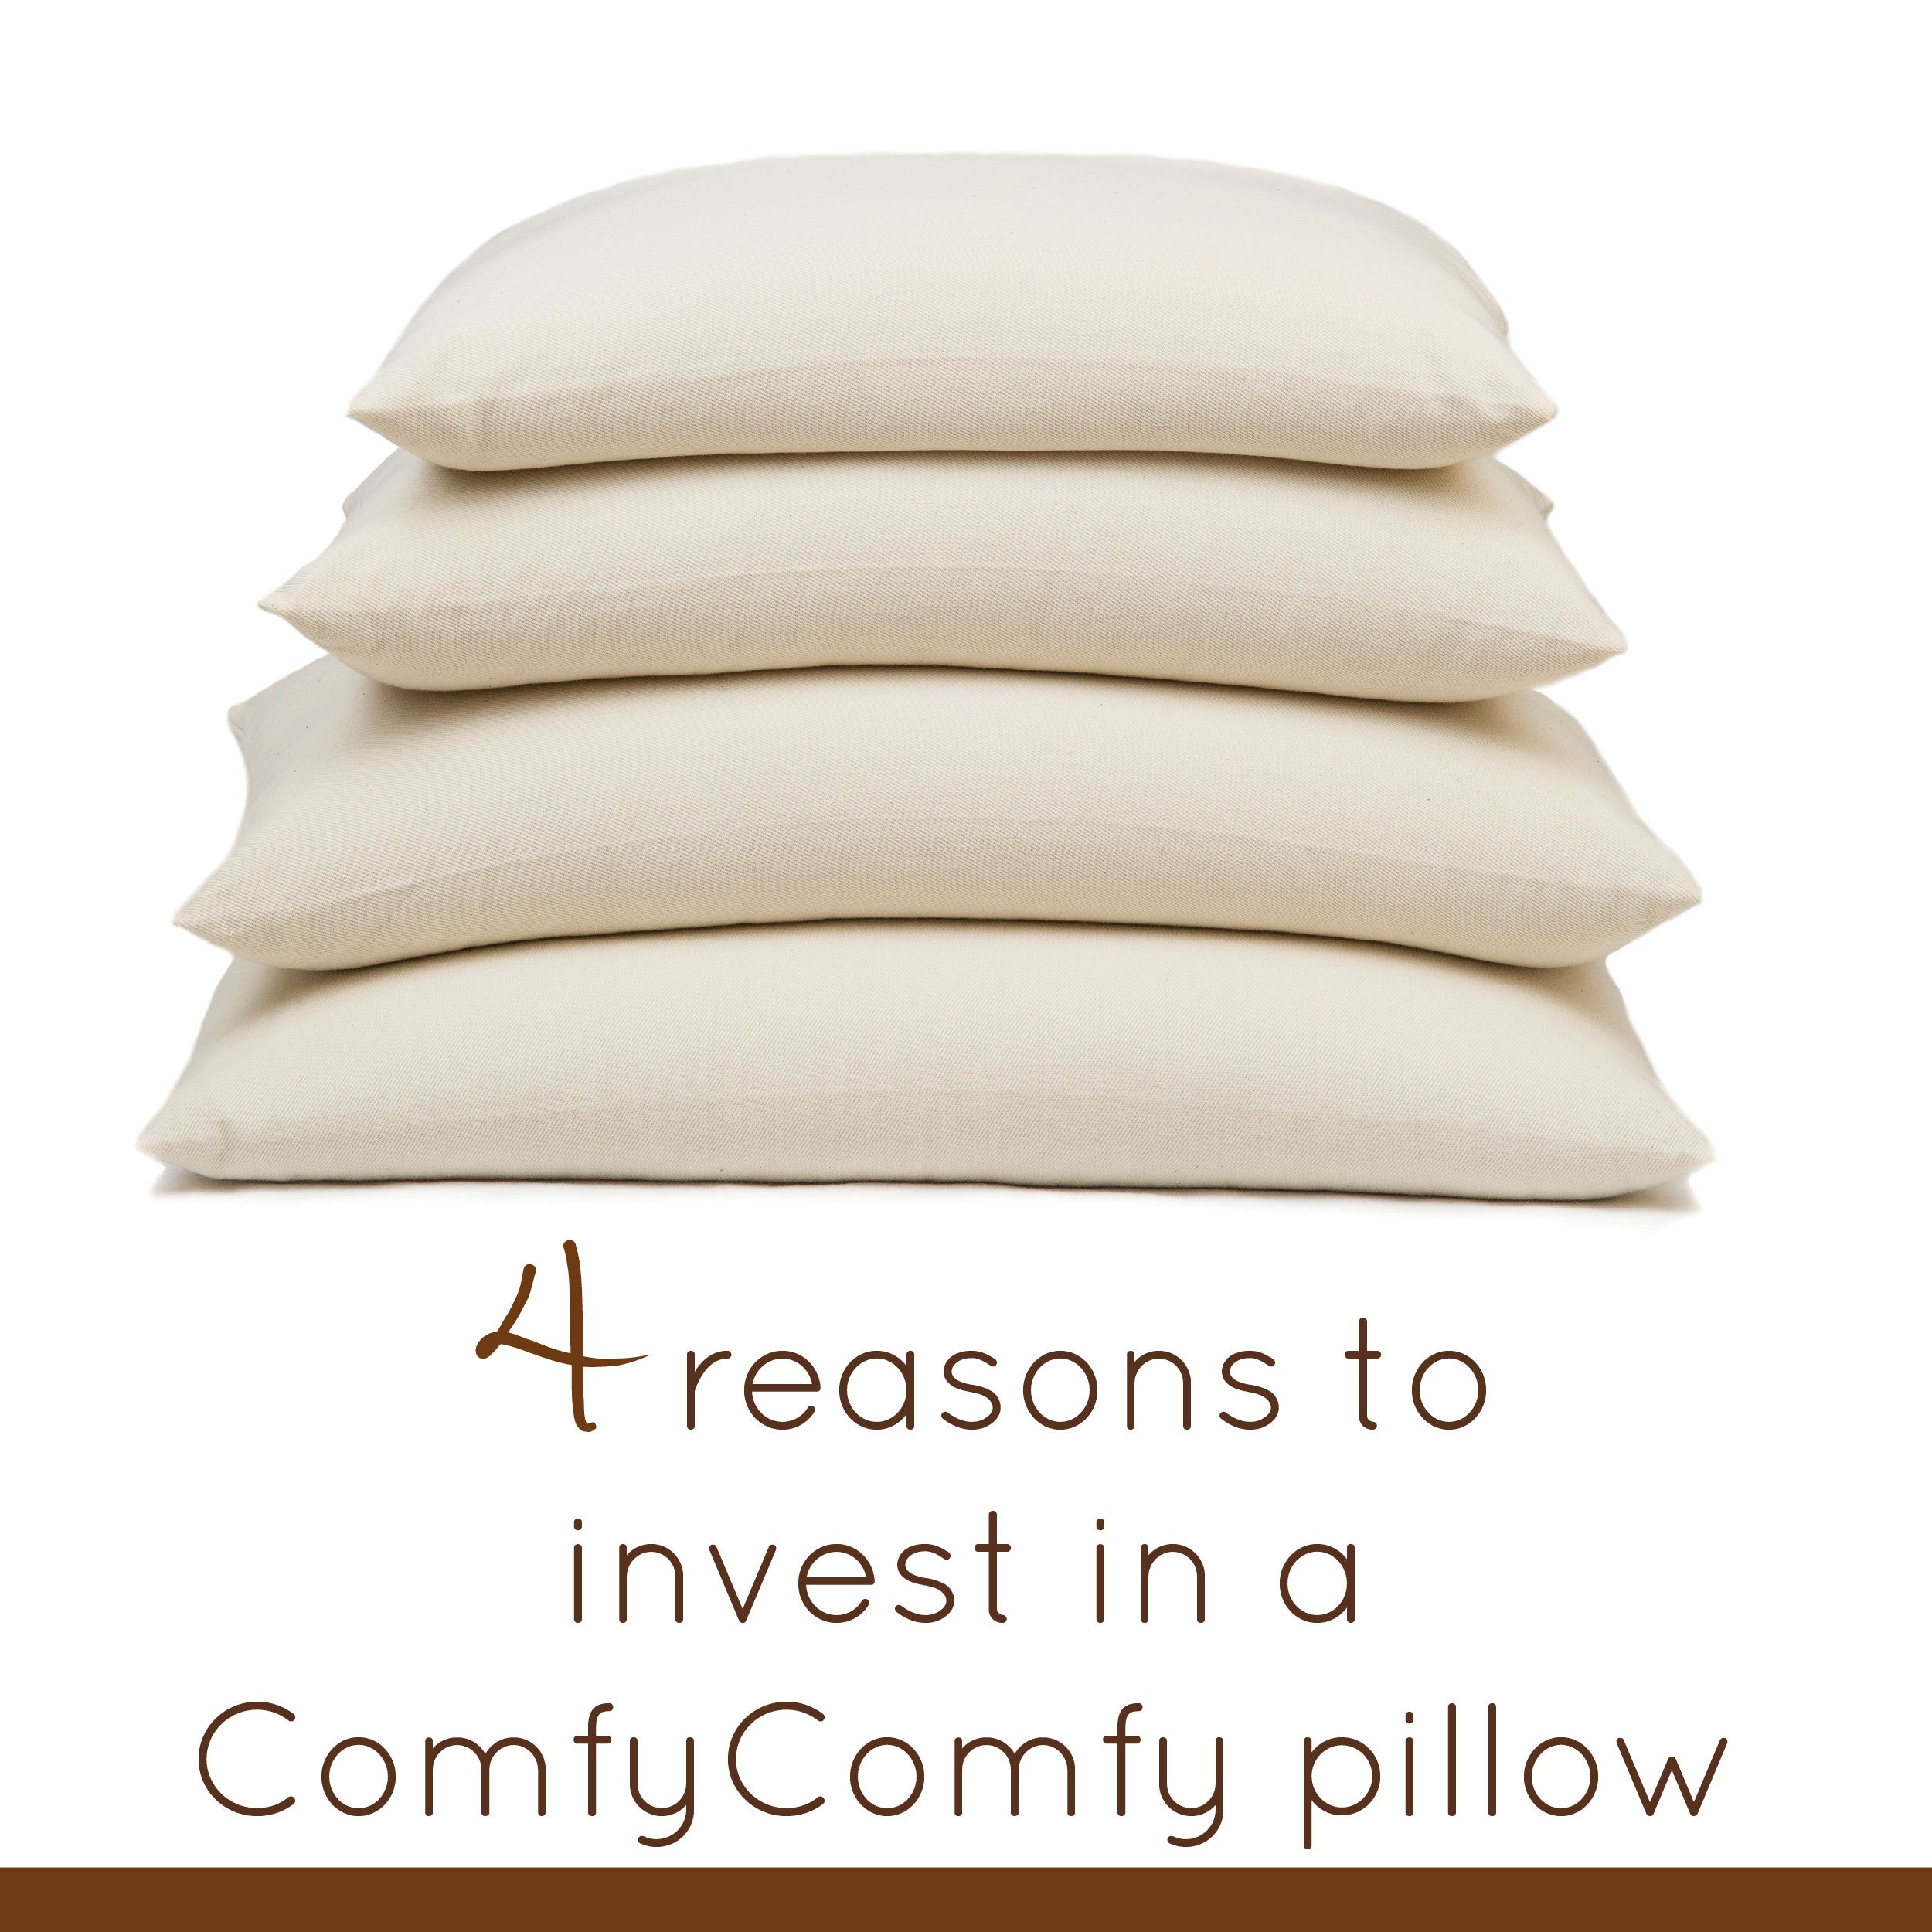 4 reasons to invest in a buckwheat pillow